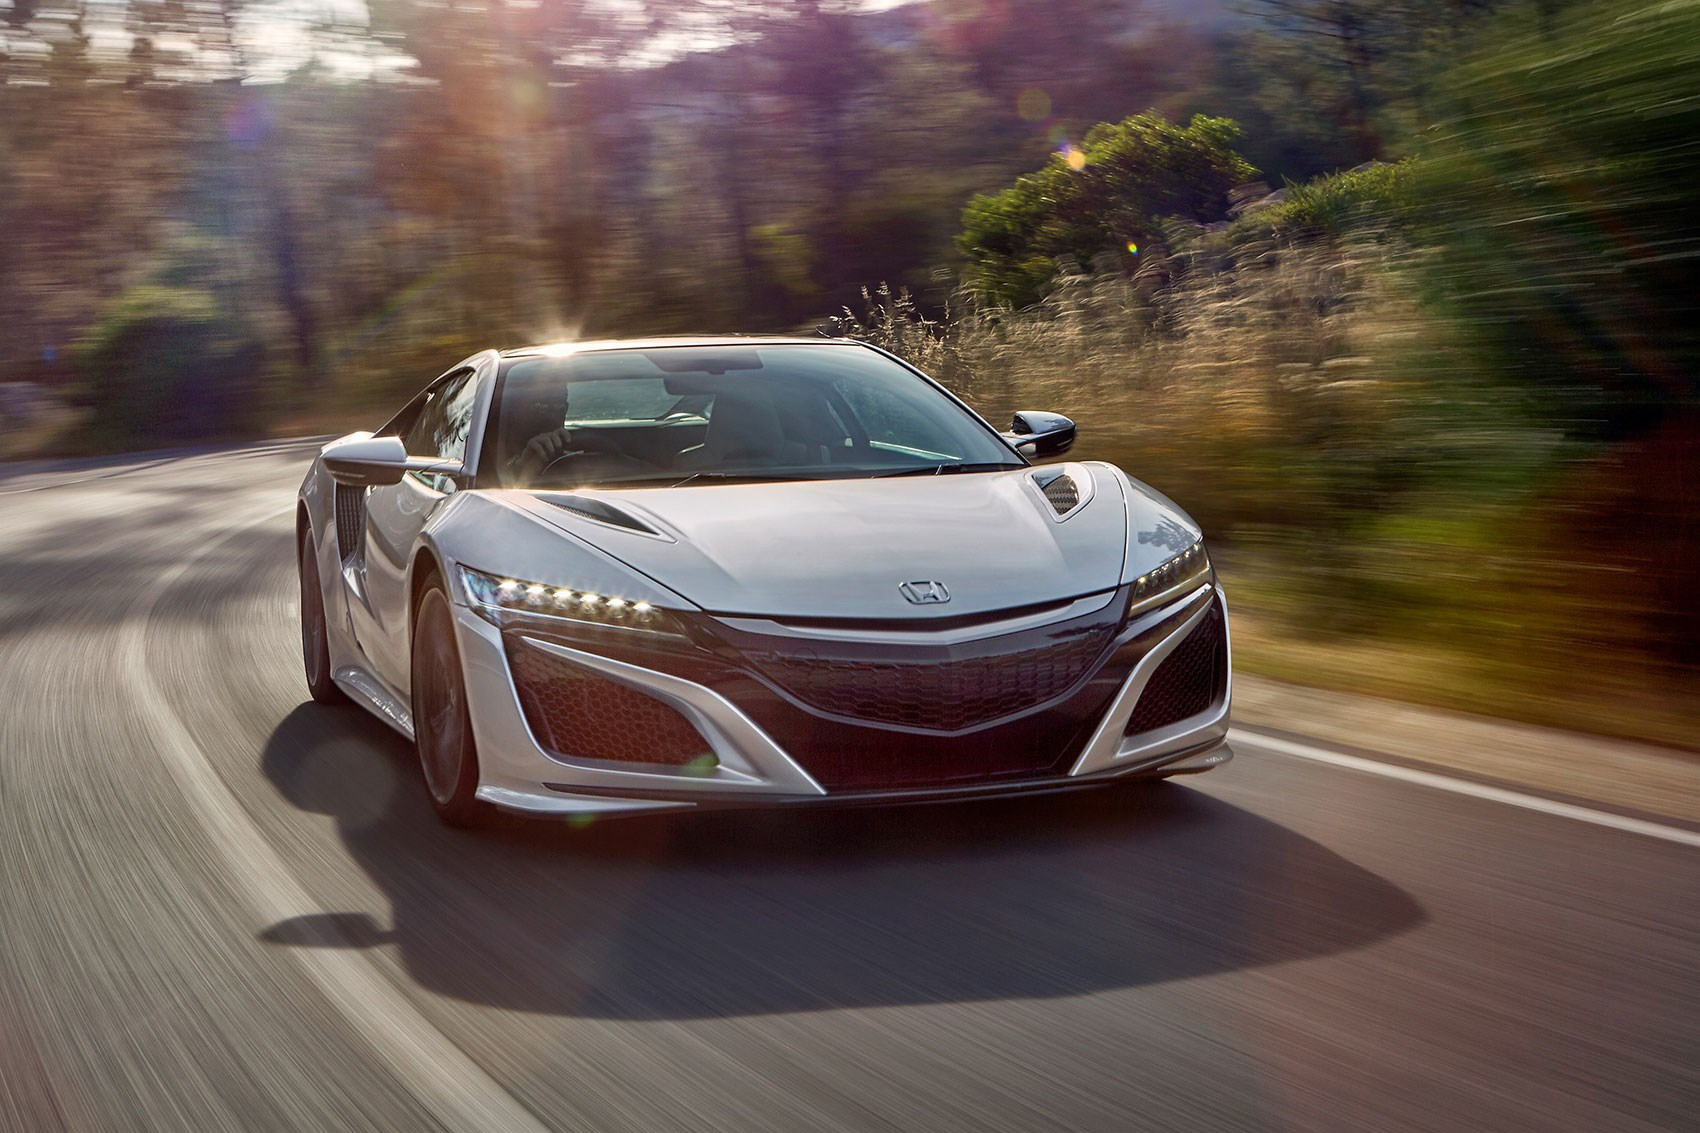 Honda Nsx One Of The Cleverest Hybrid Cars Weve Ever Driven